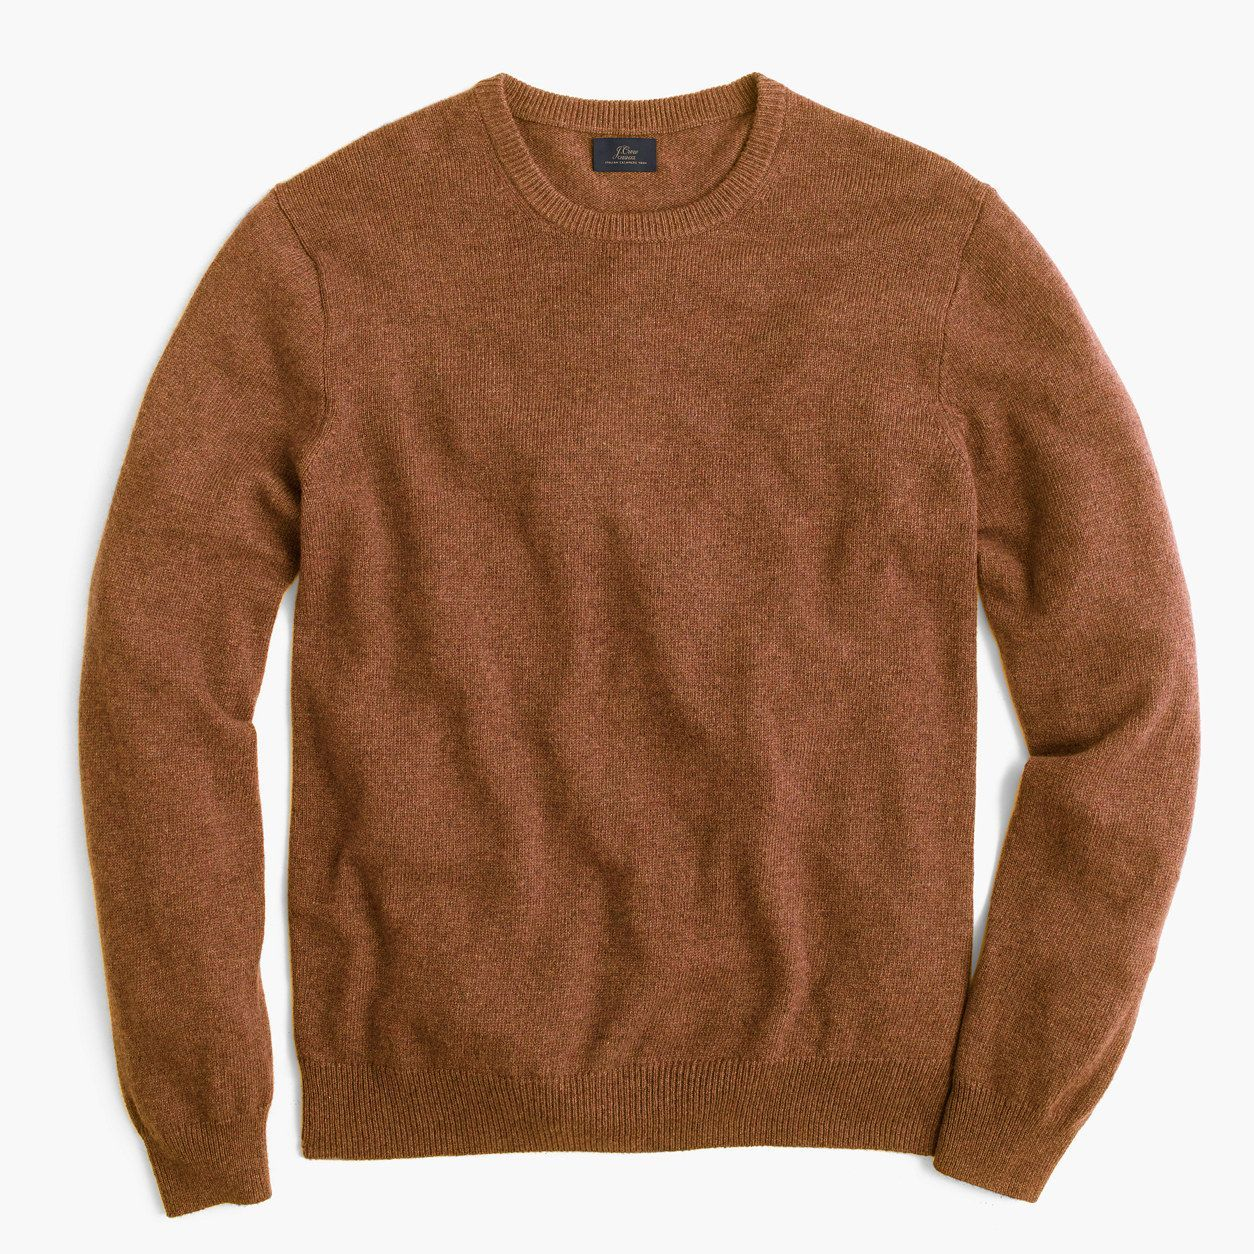 Jcrew Mens Tall Italian Cashmere Crewneck Sweater Size L Tall